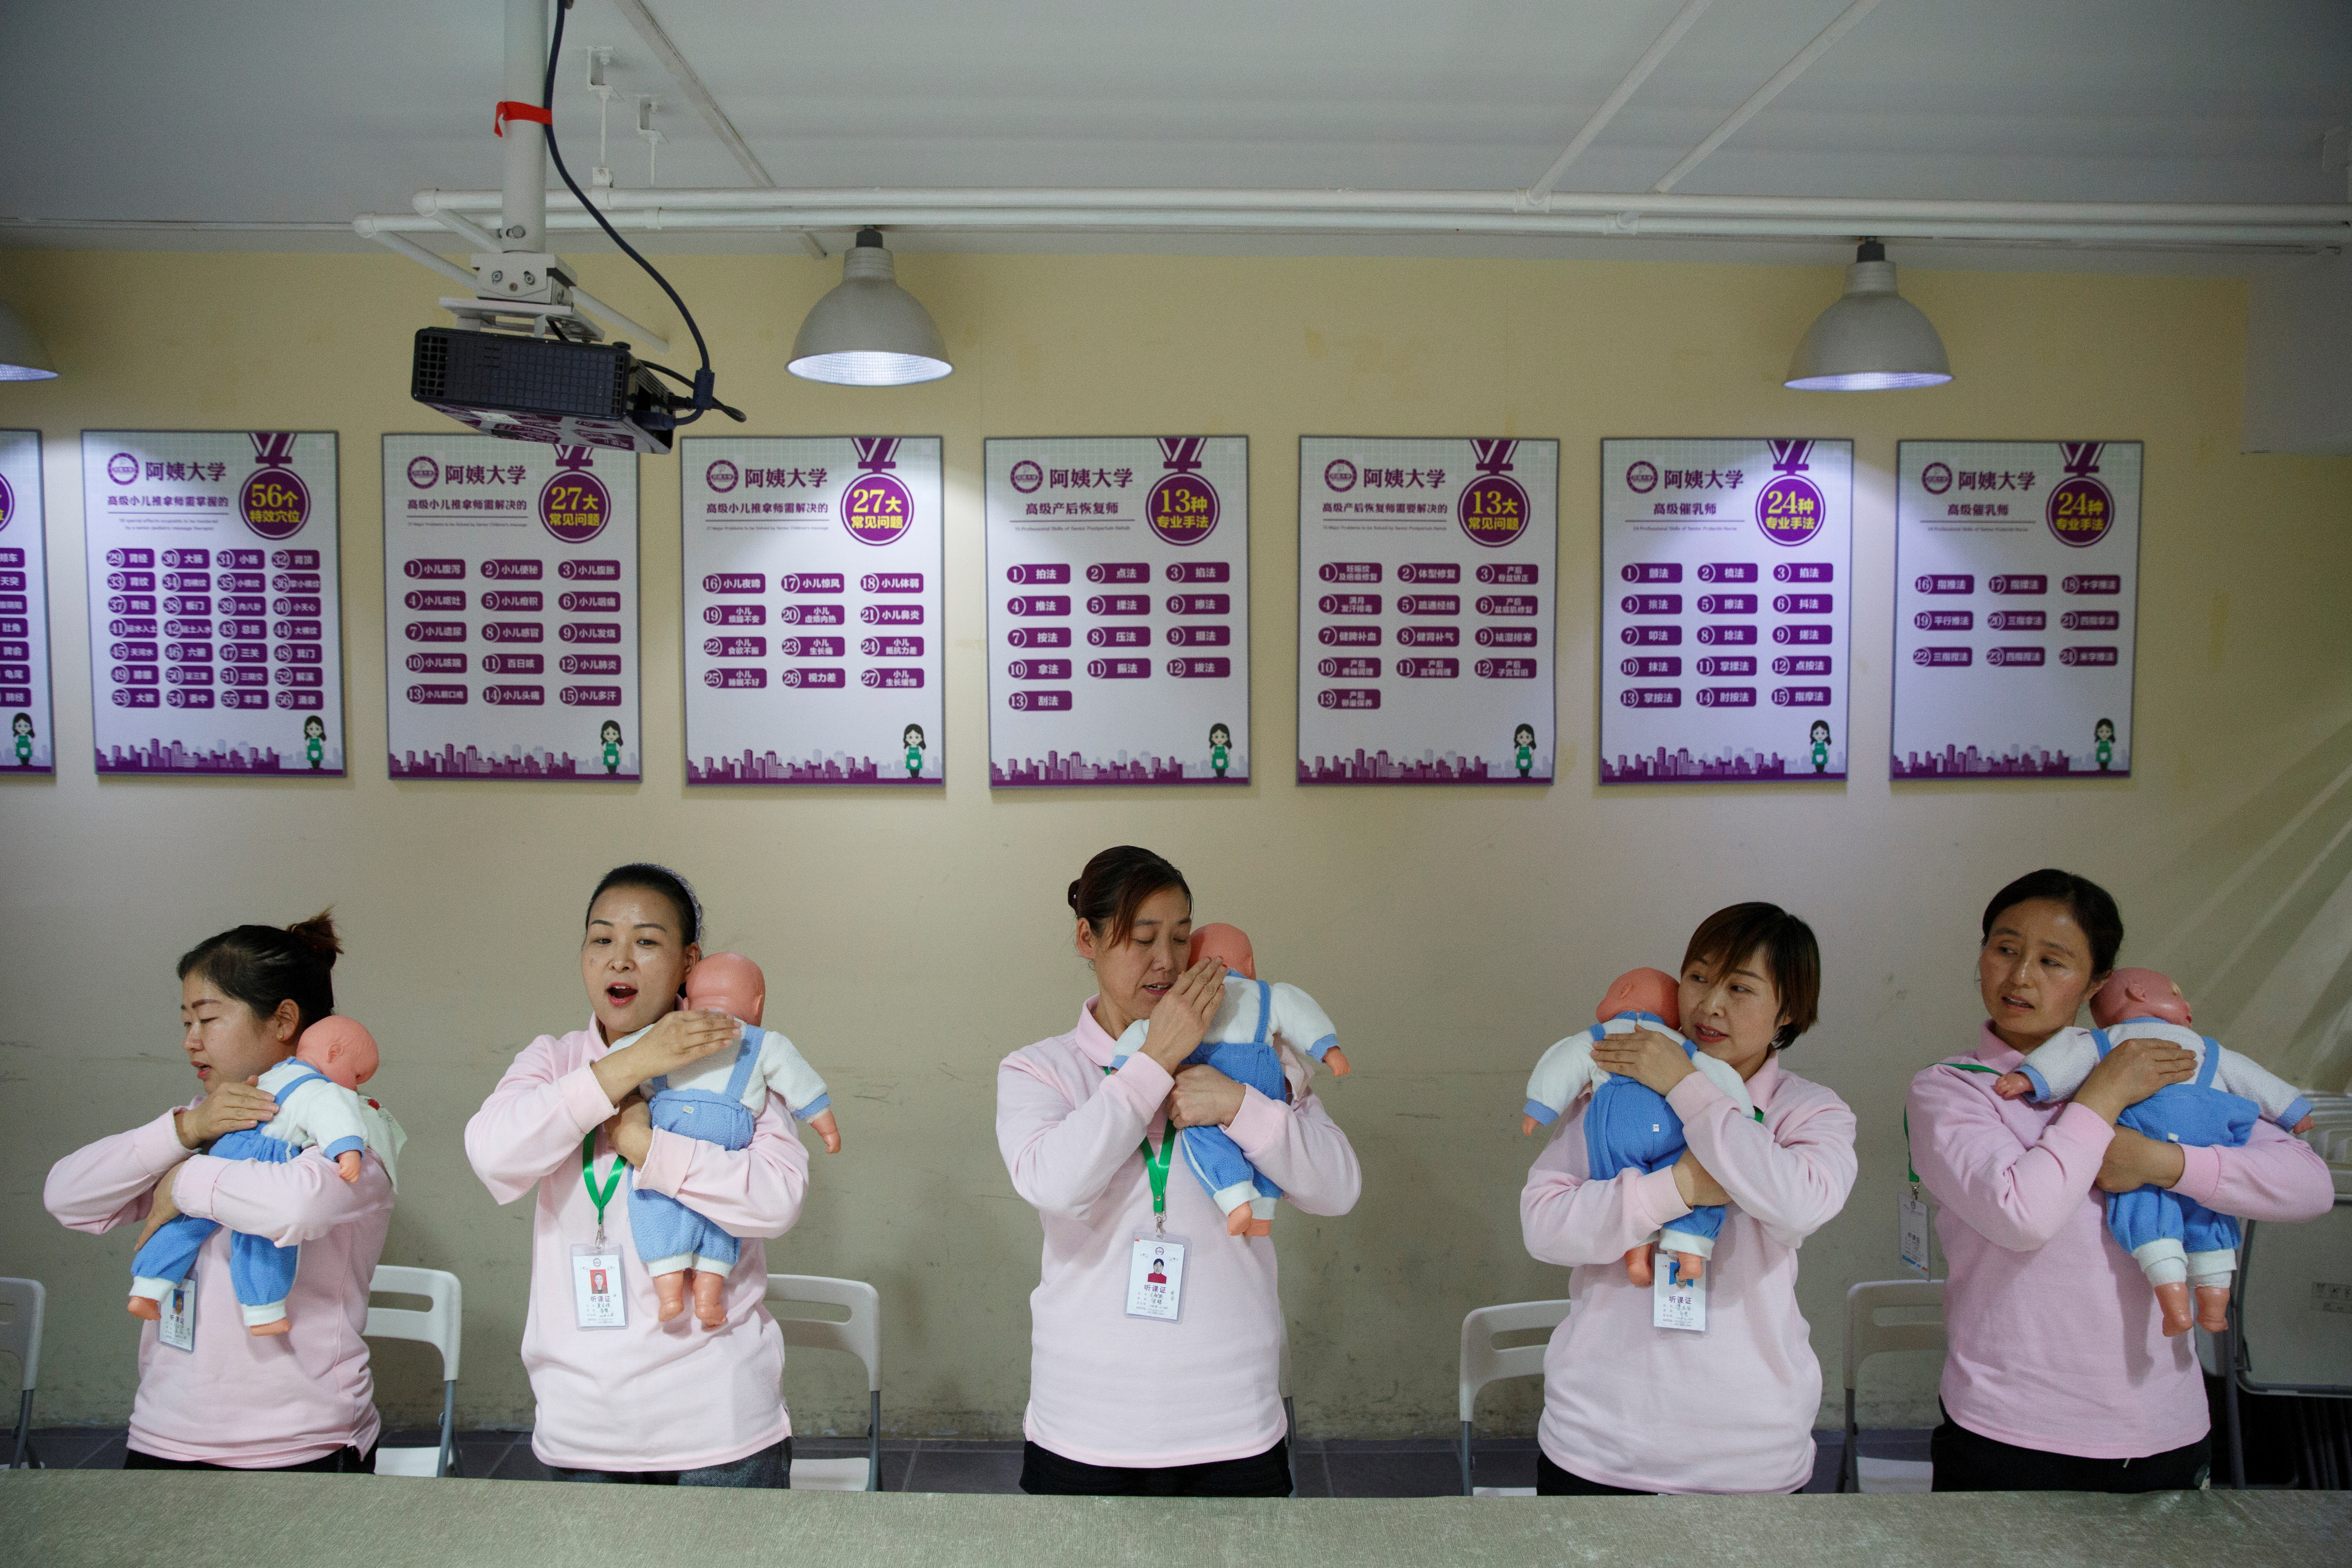 Students at Ayi University, a training program for domestic helpers, practice on baby dolls during a course teaching childcare in Beijing, China December 5, 2018.  REUTERS/Thomas Peter